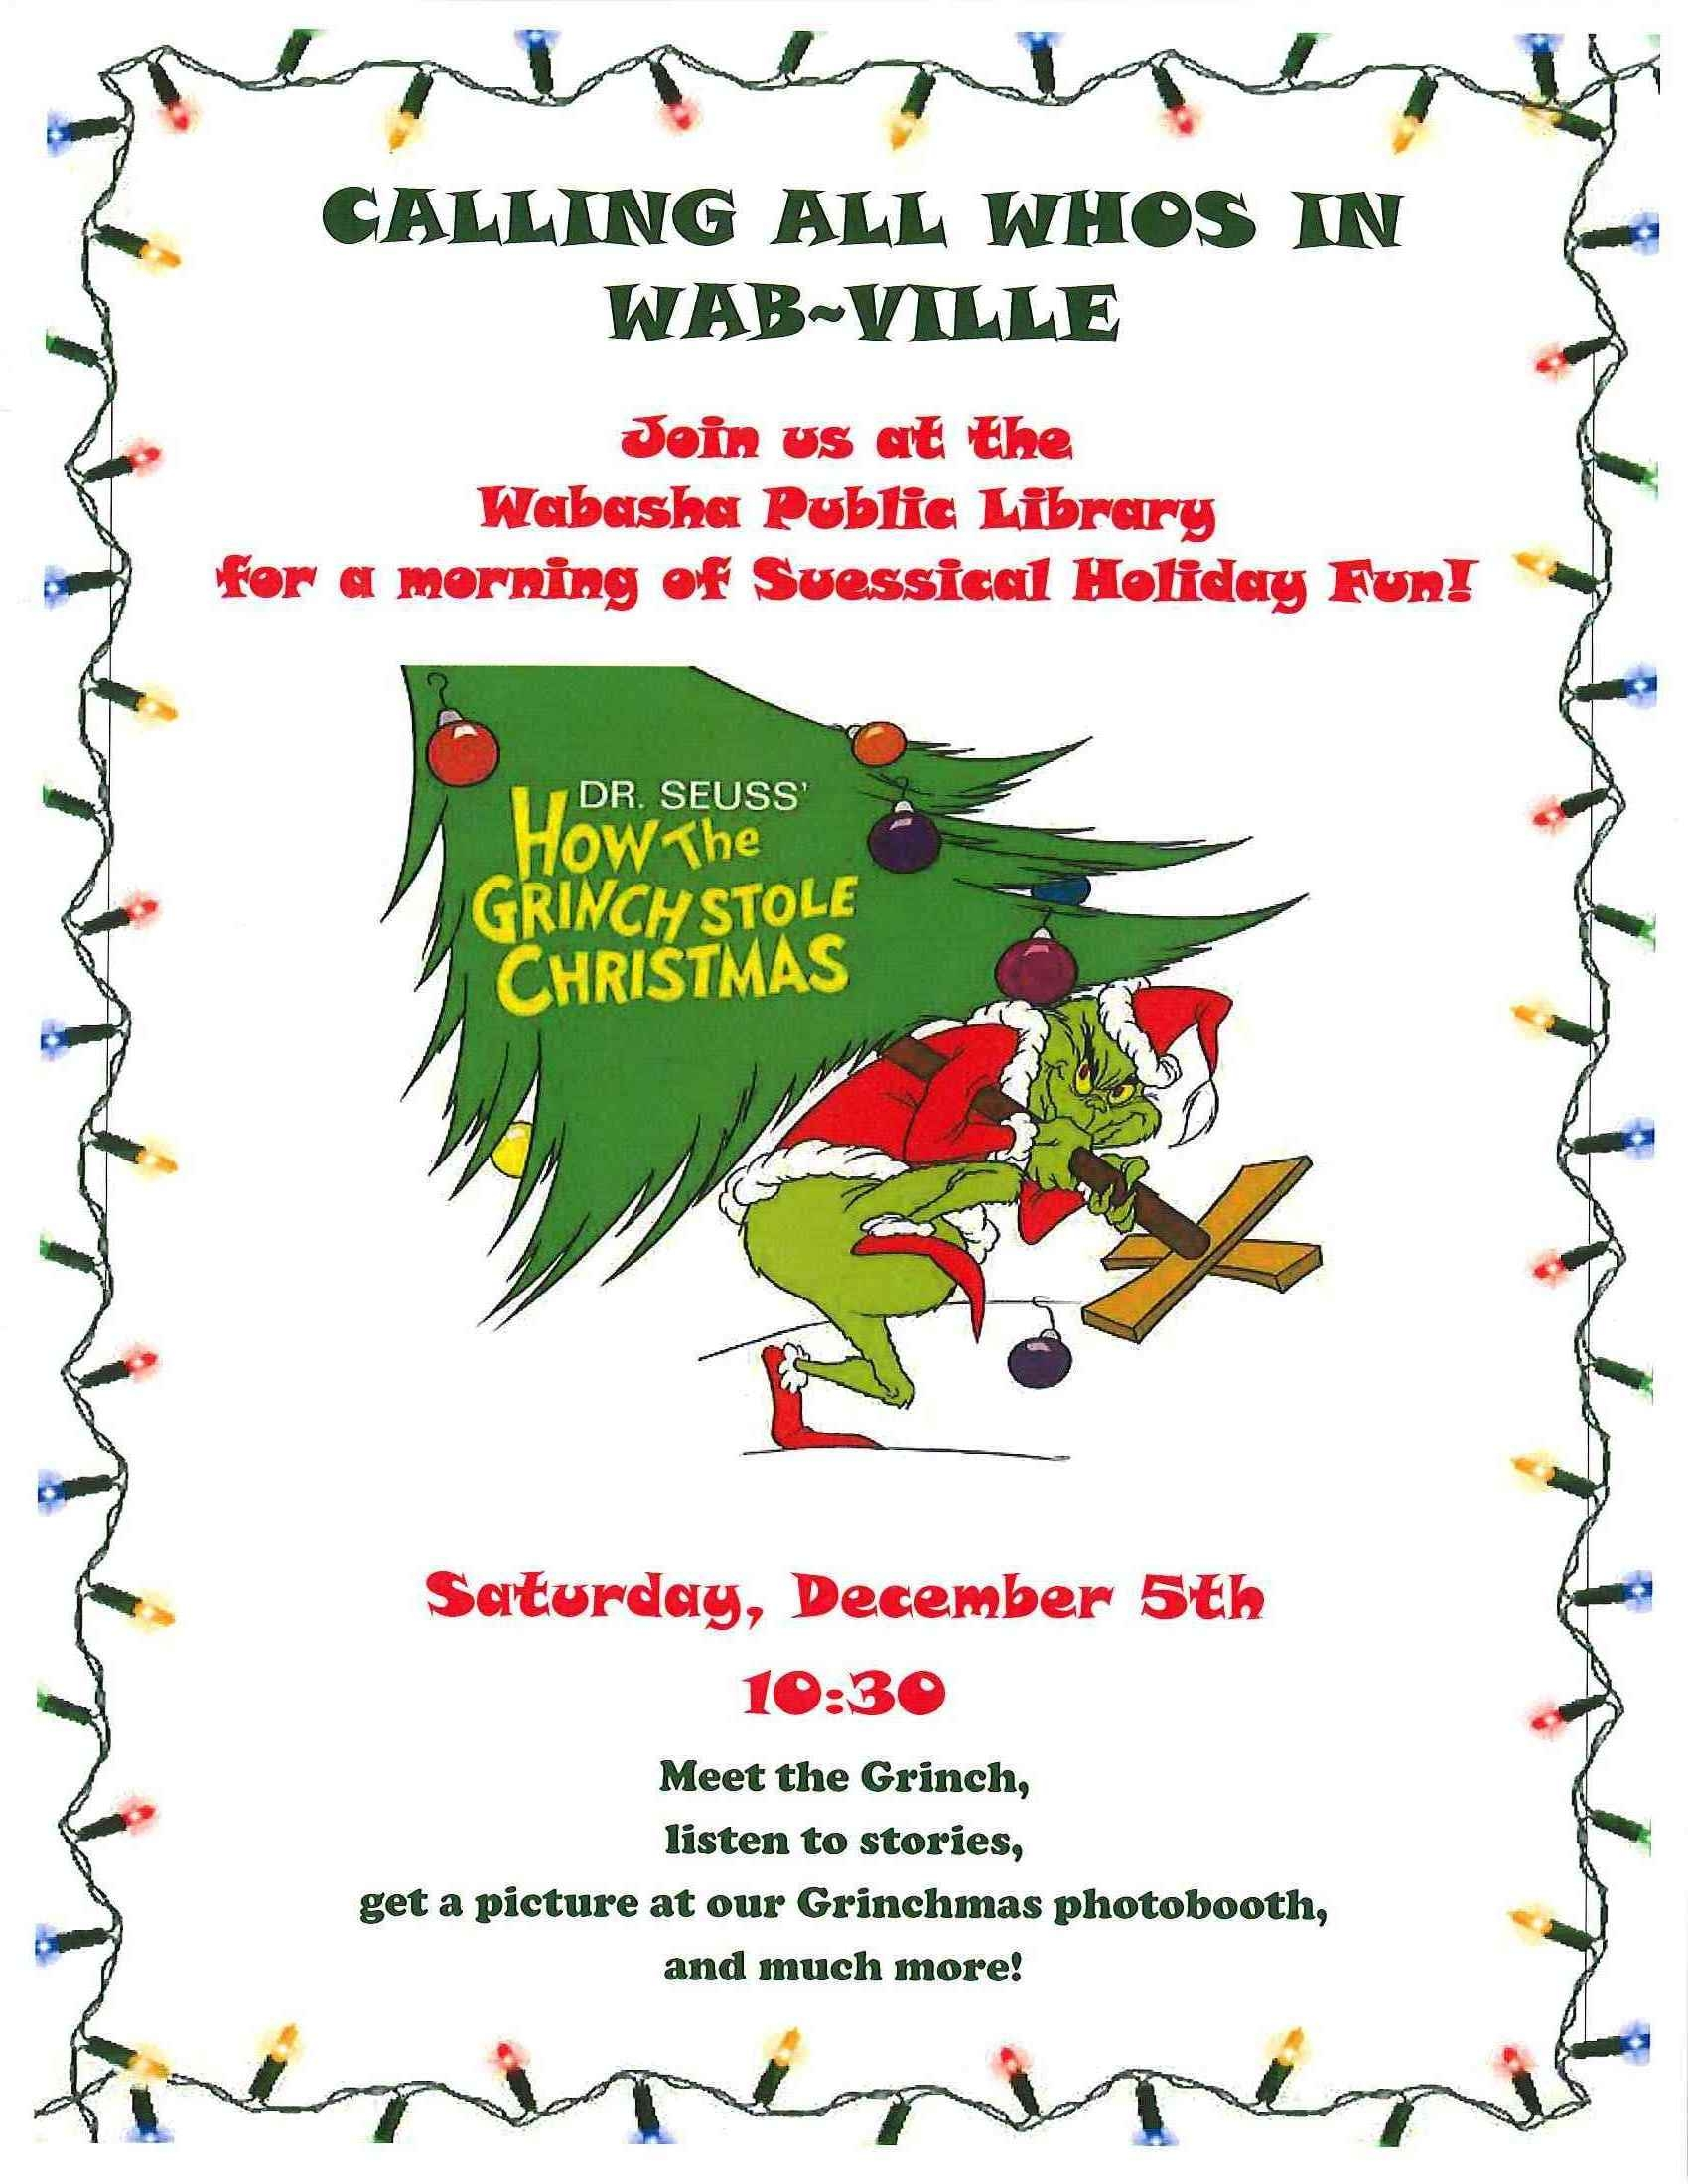 Seussical Holiday Fun On December 5th At 10 30 A M